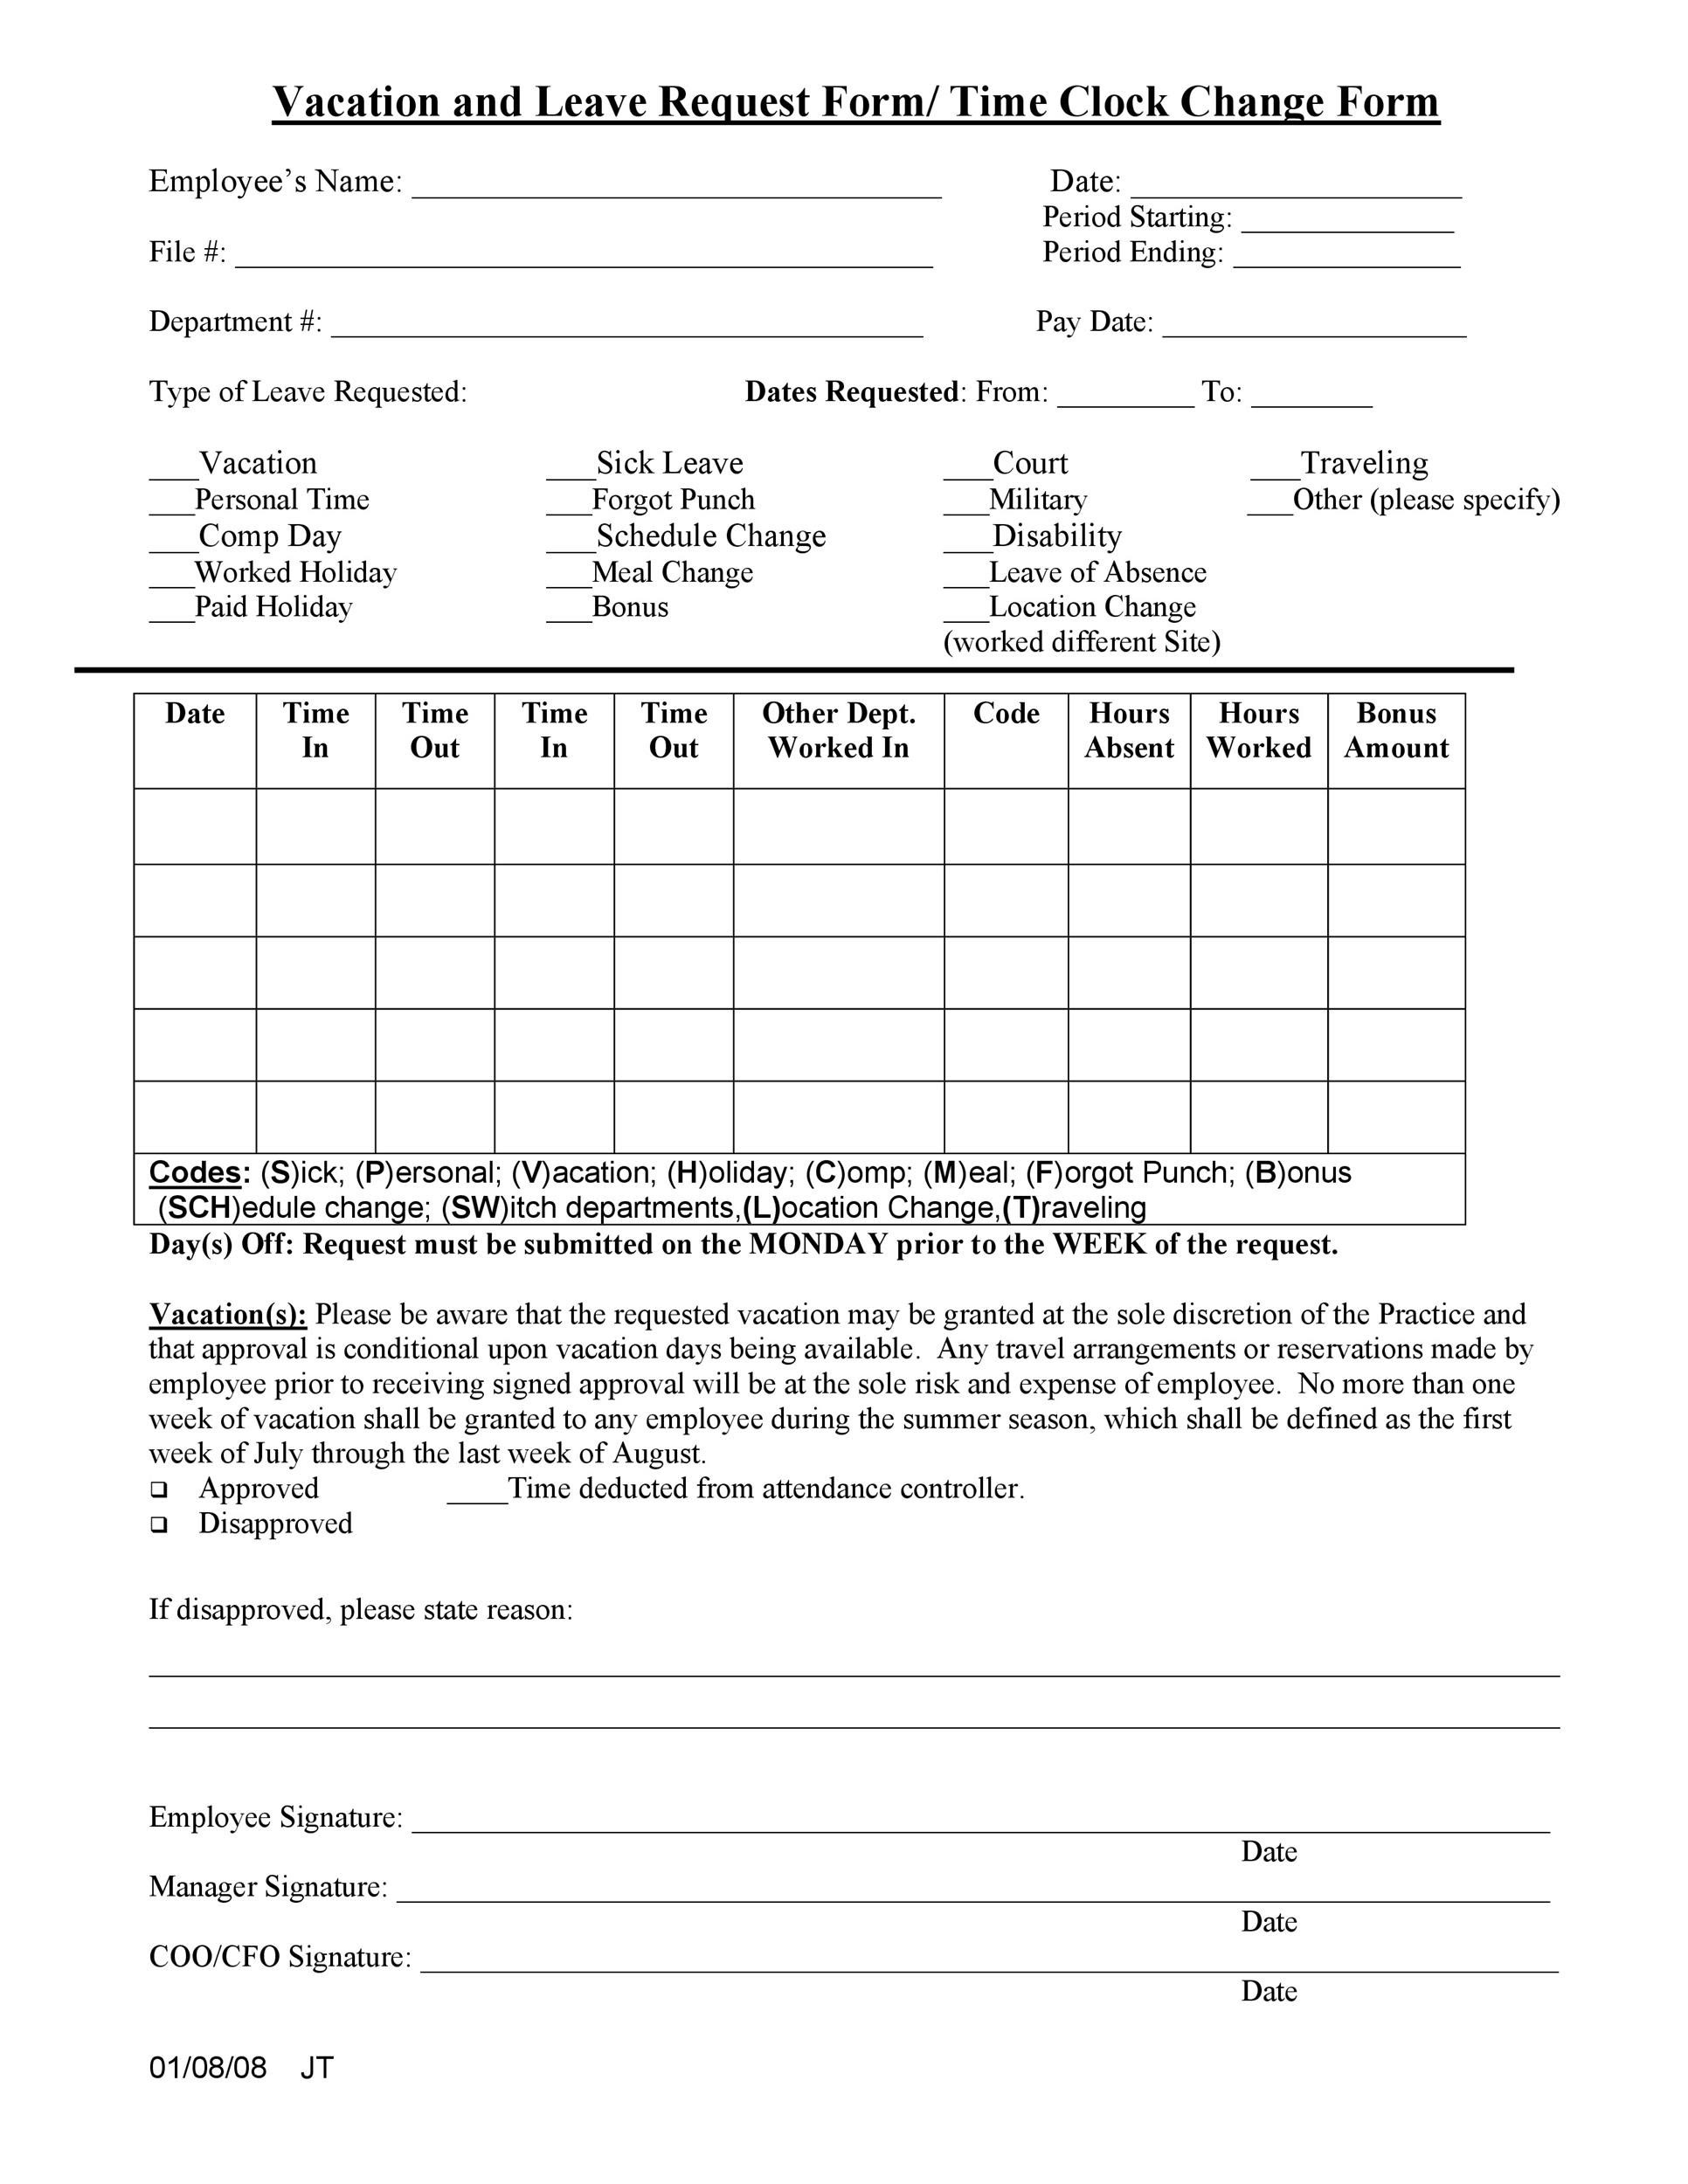 50 Professional Employee Vacation Request Forms Word ᐅ ...